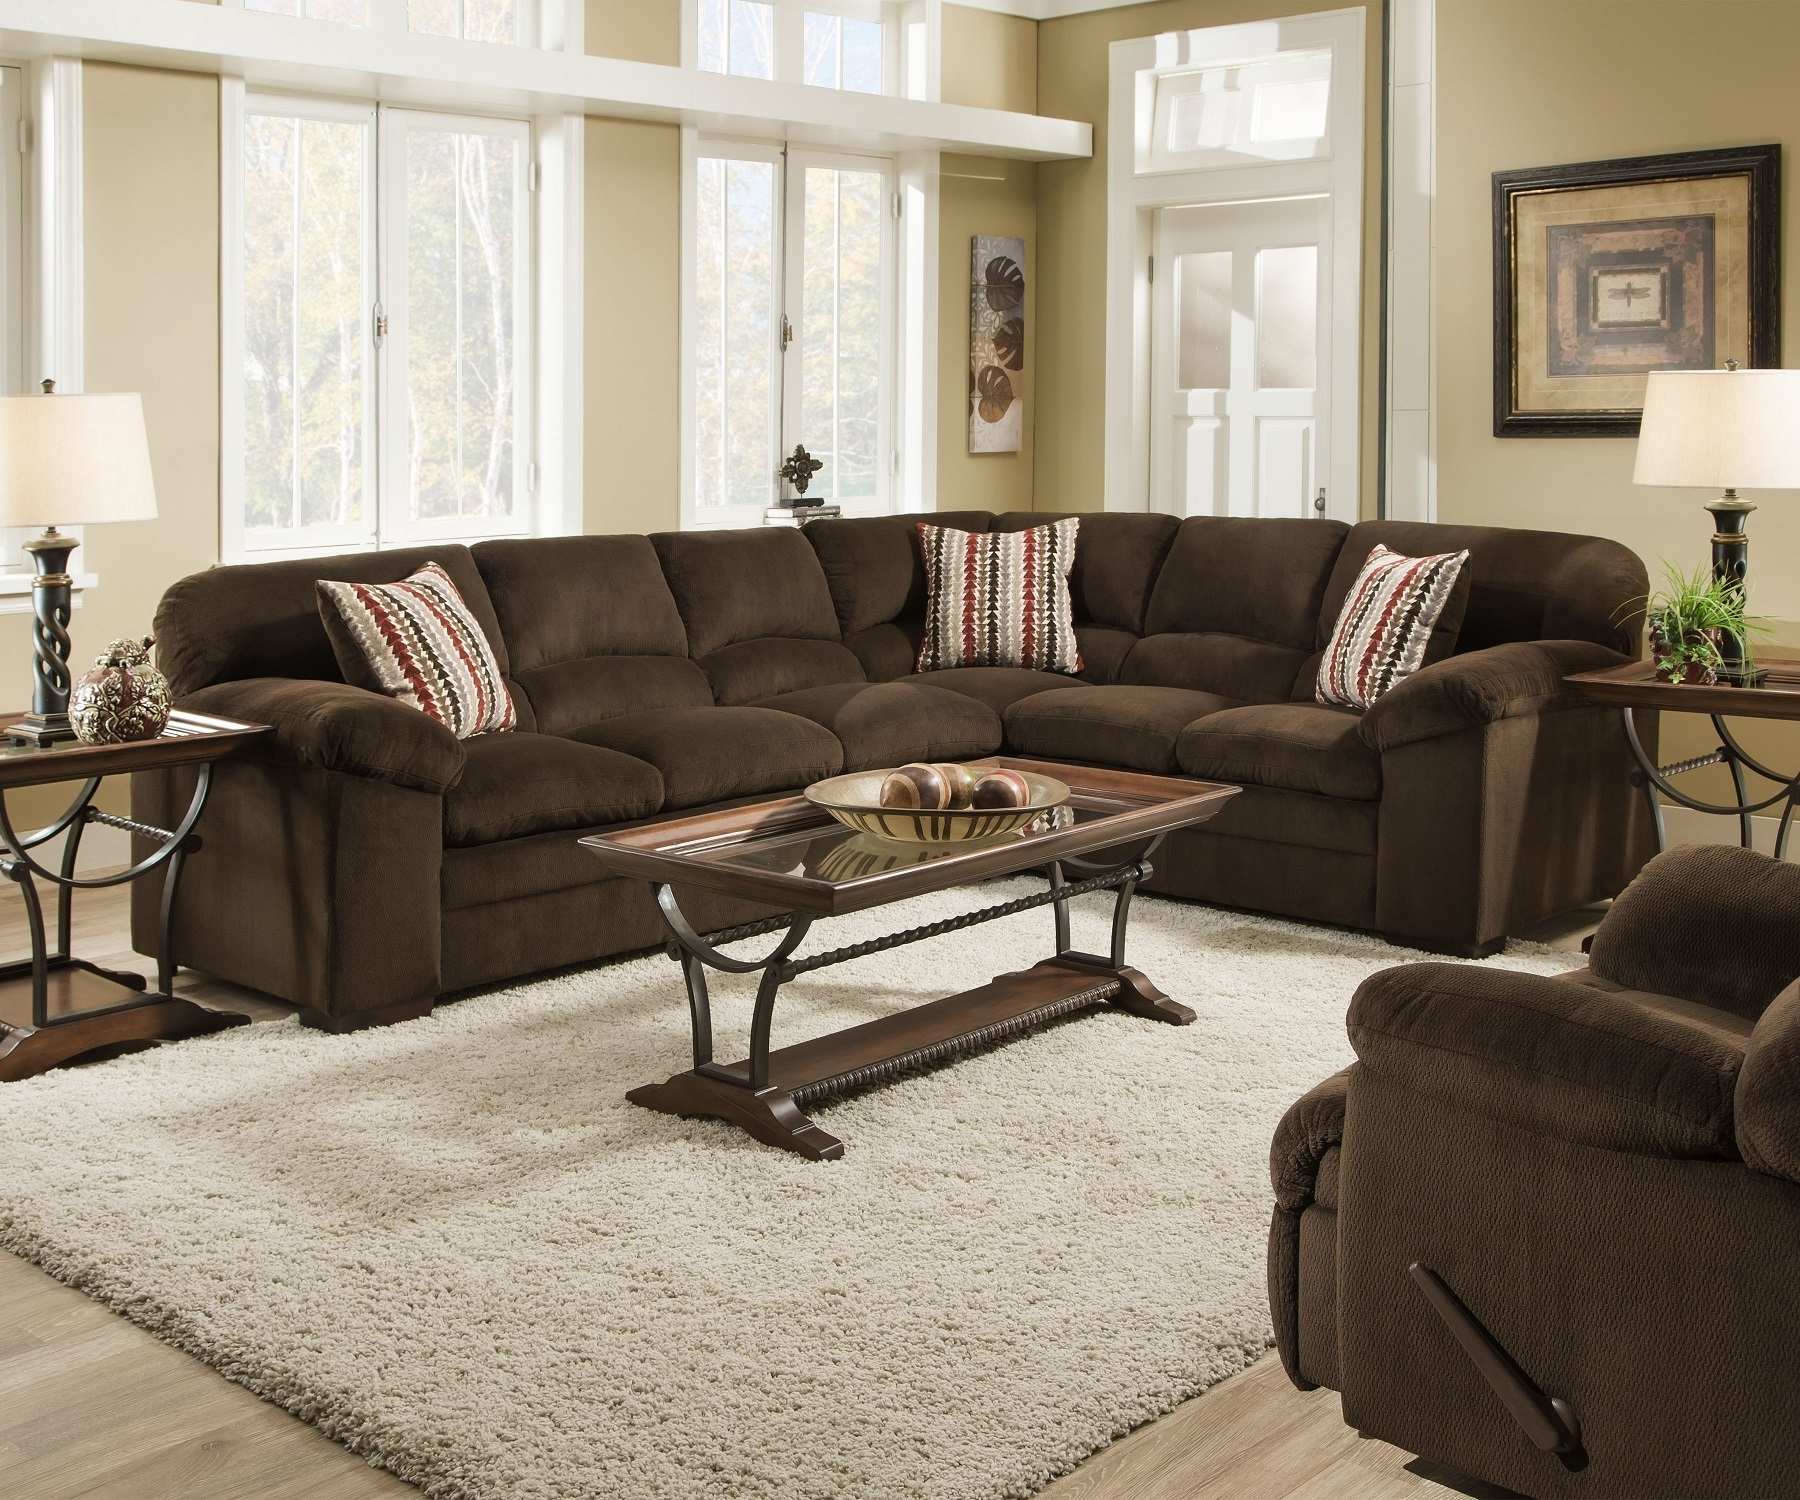 Simmons Dover 8043 Chocolate Ultra Plush Soft Seating Made In The Usa In Well Known Simmons Sectional Sofas (View 7 of 15)